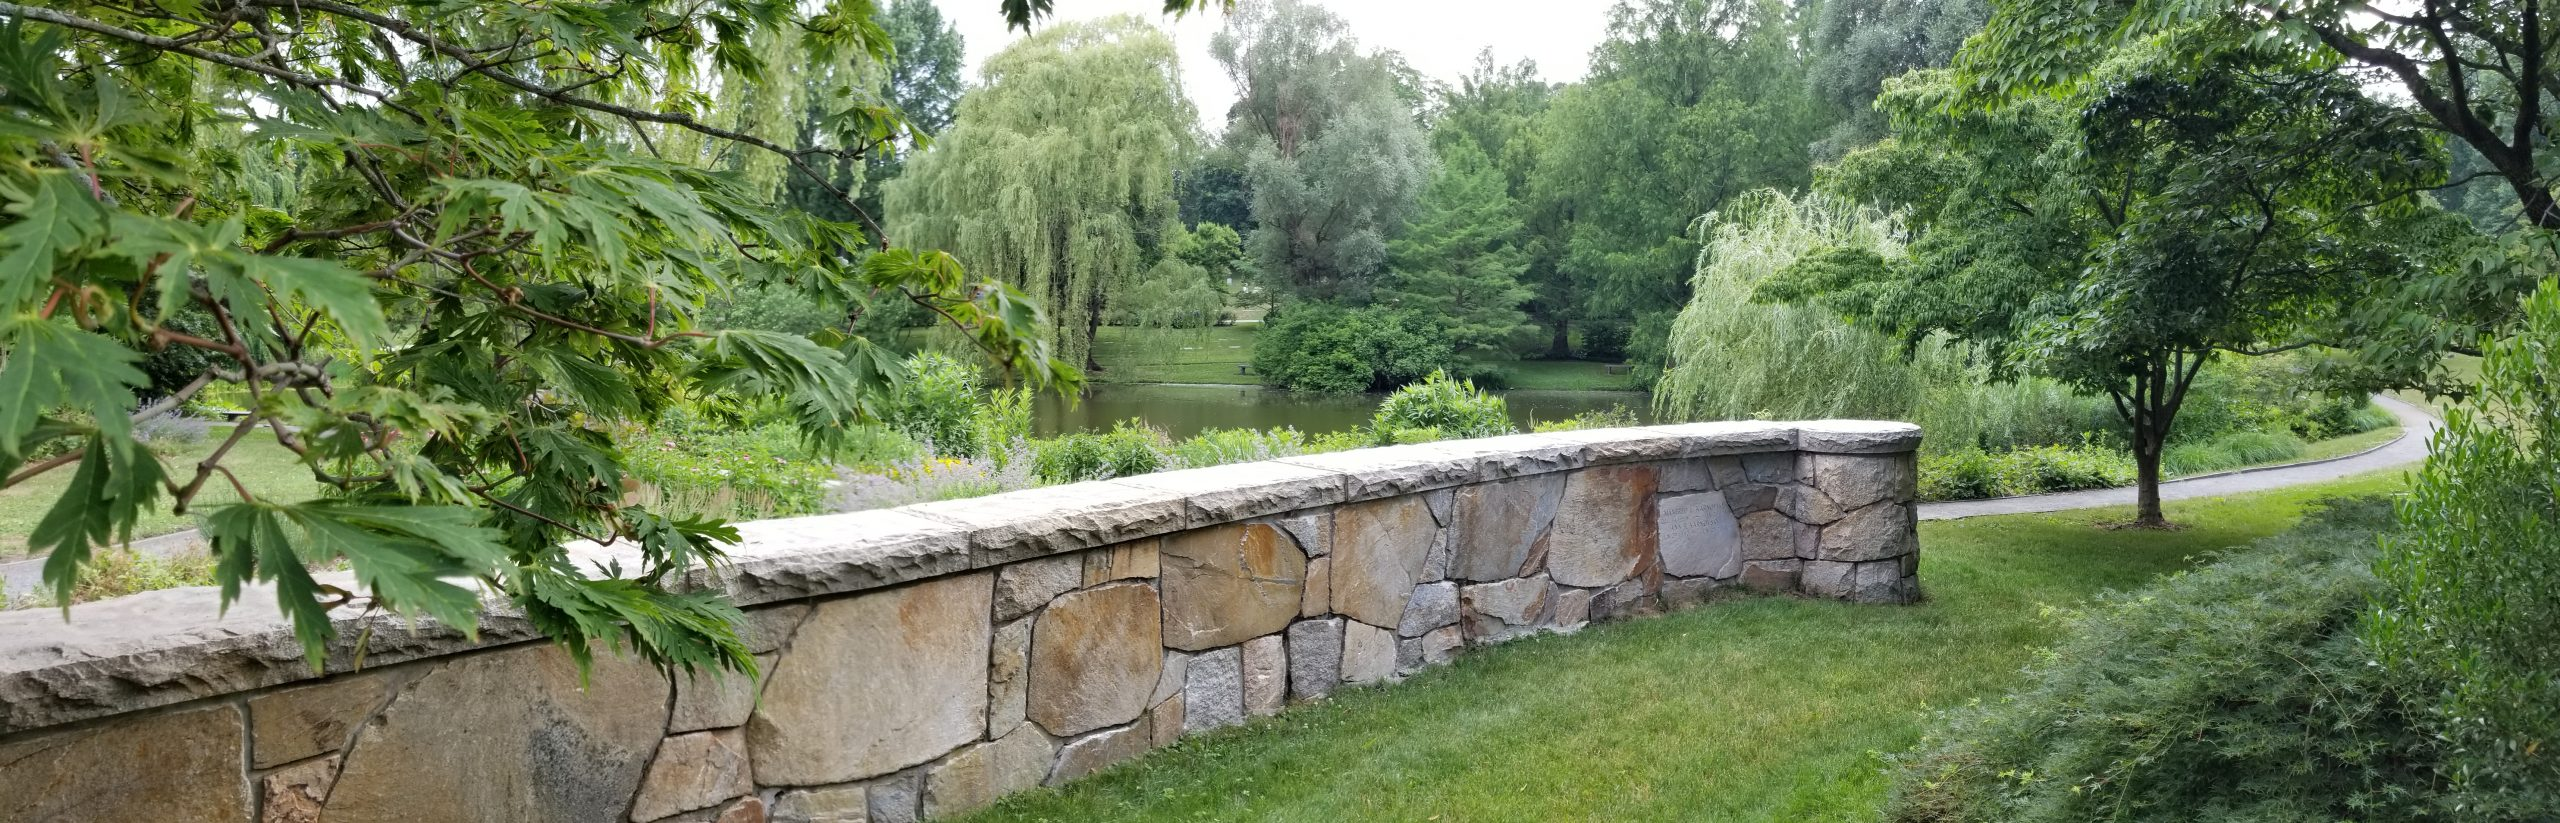 A fieldstone wall overlooks Willow Pond. Individual stones within the wall bear the names and dates of people buried in the ground at the base of the wall.